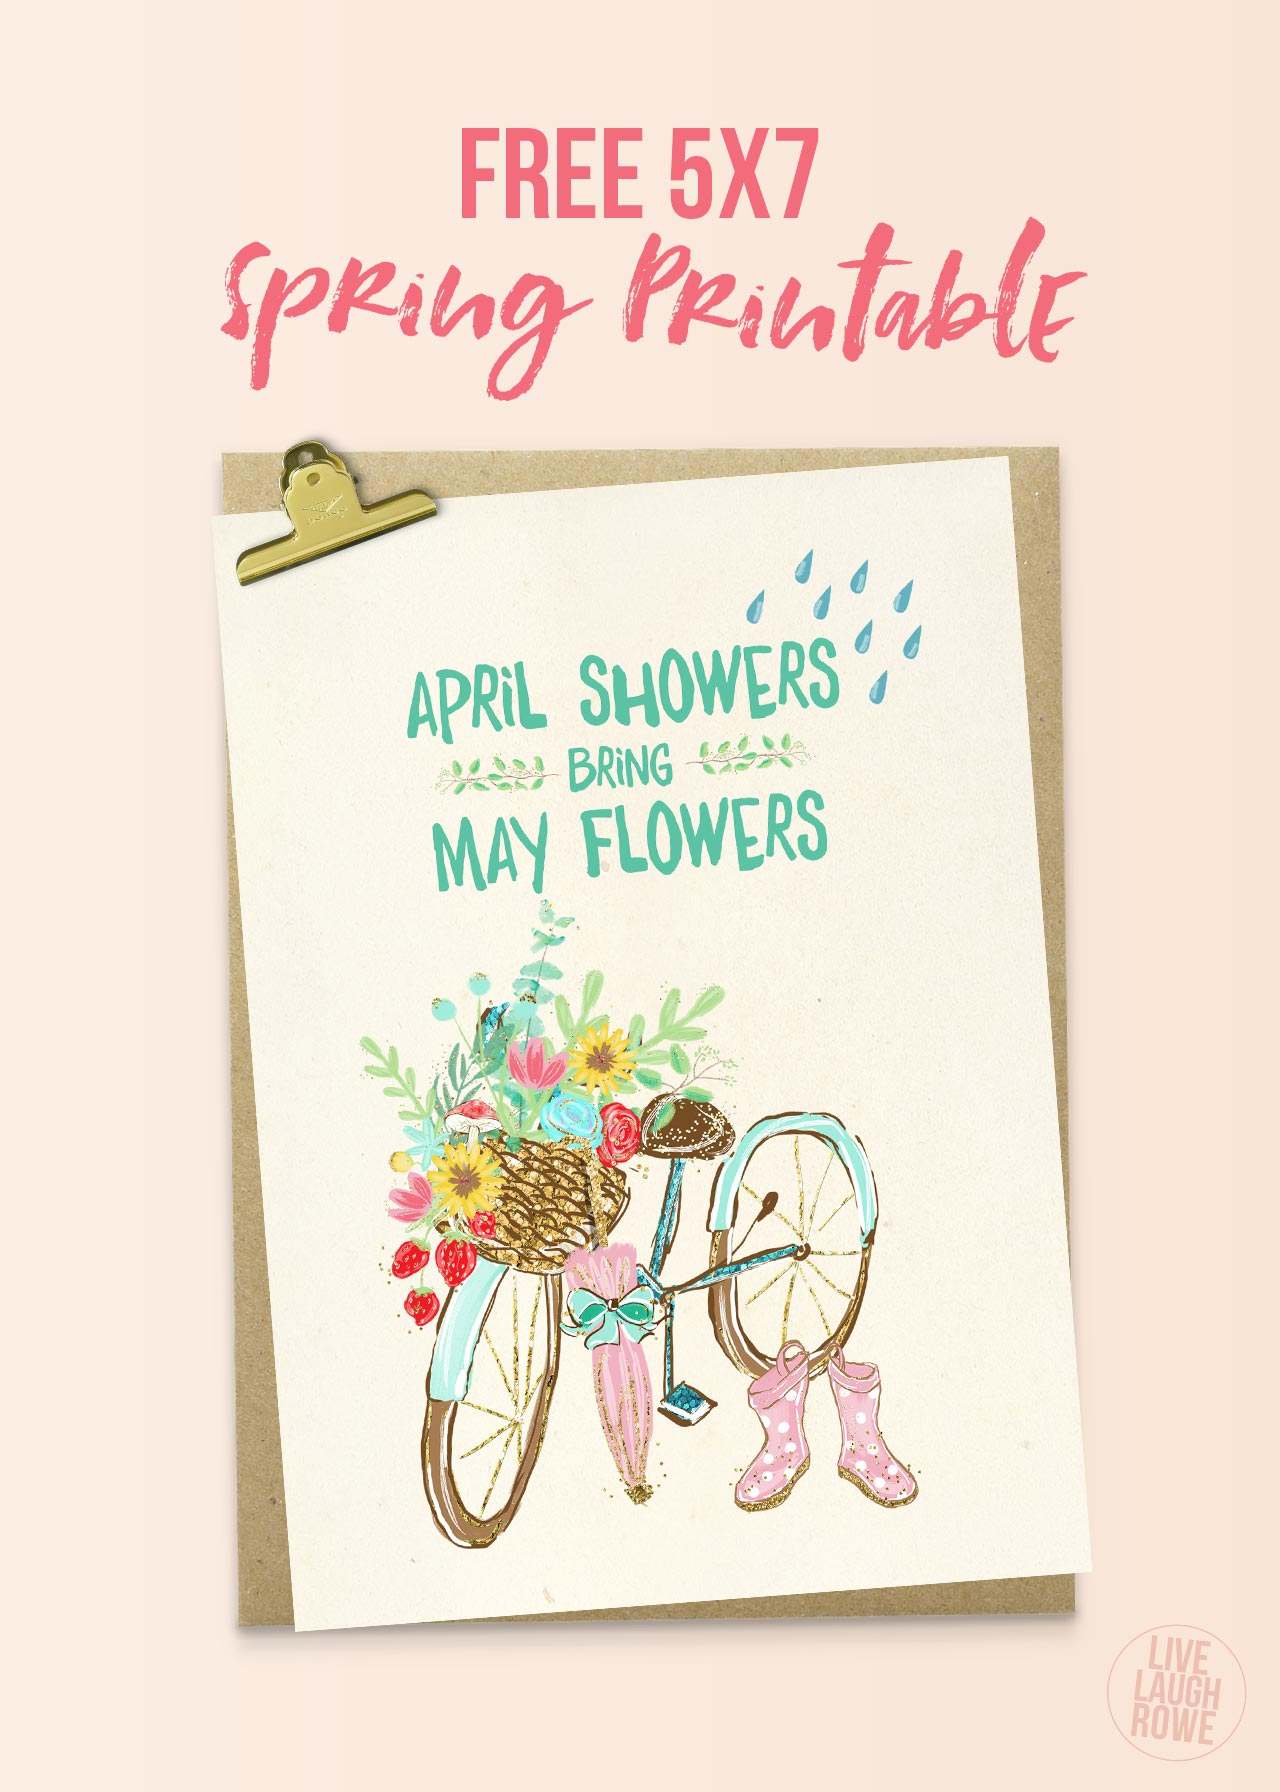 April Showers May Flowers